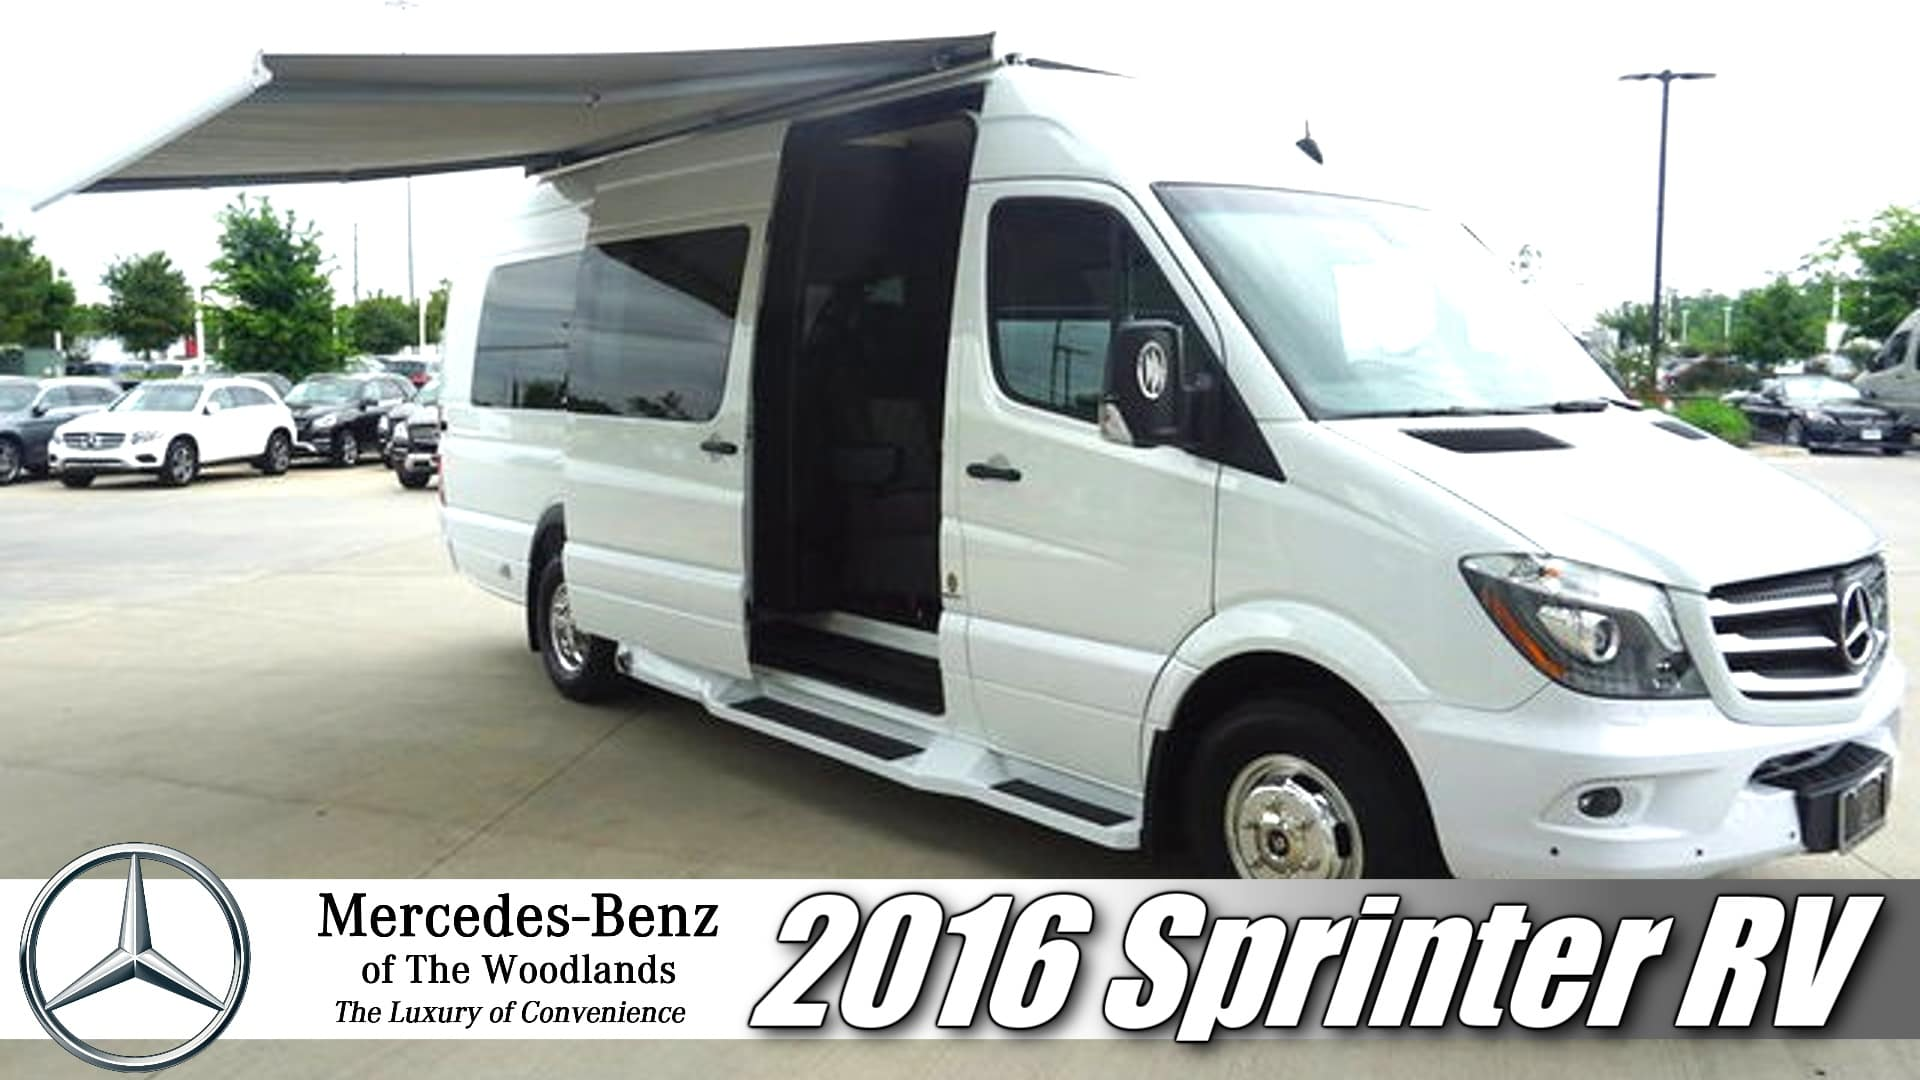 Mercedes Benz Sprinter Rv >> Sprinter Motorhome Foretravel Microvilla Mercedes Benz Of